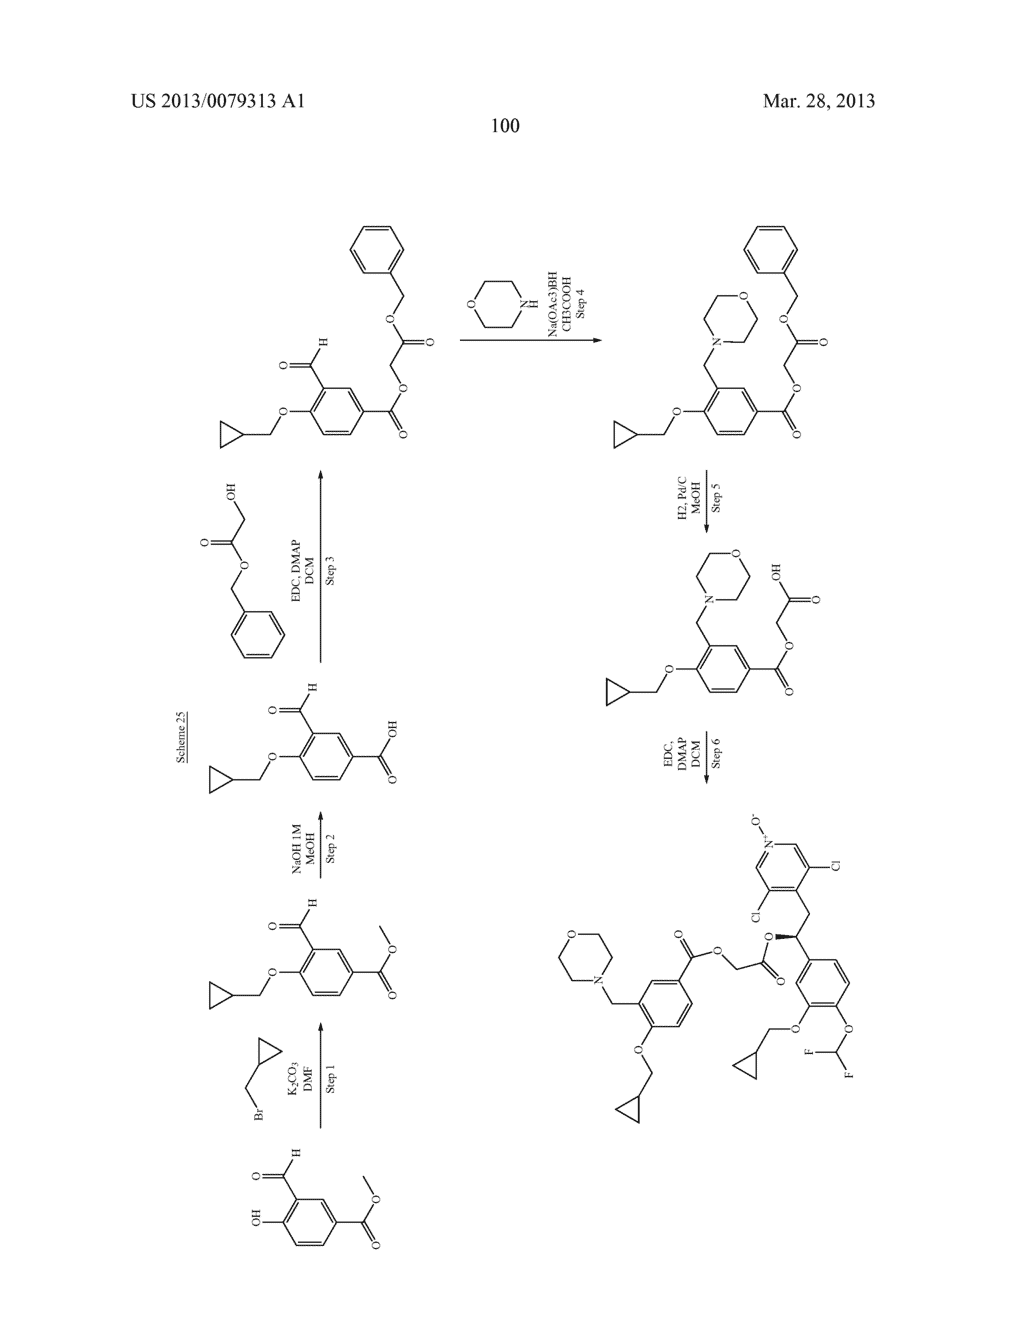 DERIVATIVES OF 1-PHENYL-2-PYRIDINYL ALKYL ALCOHOLS AS PHOSPHODIESTERASE     INHIBITORS - diagram, schematic, and image 101